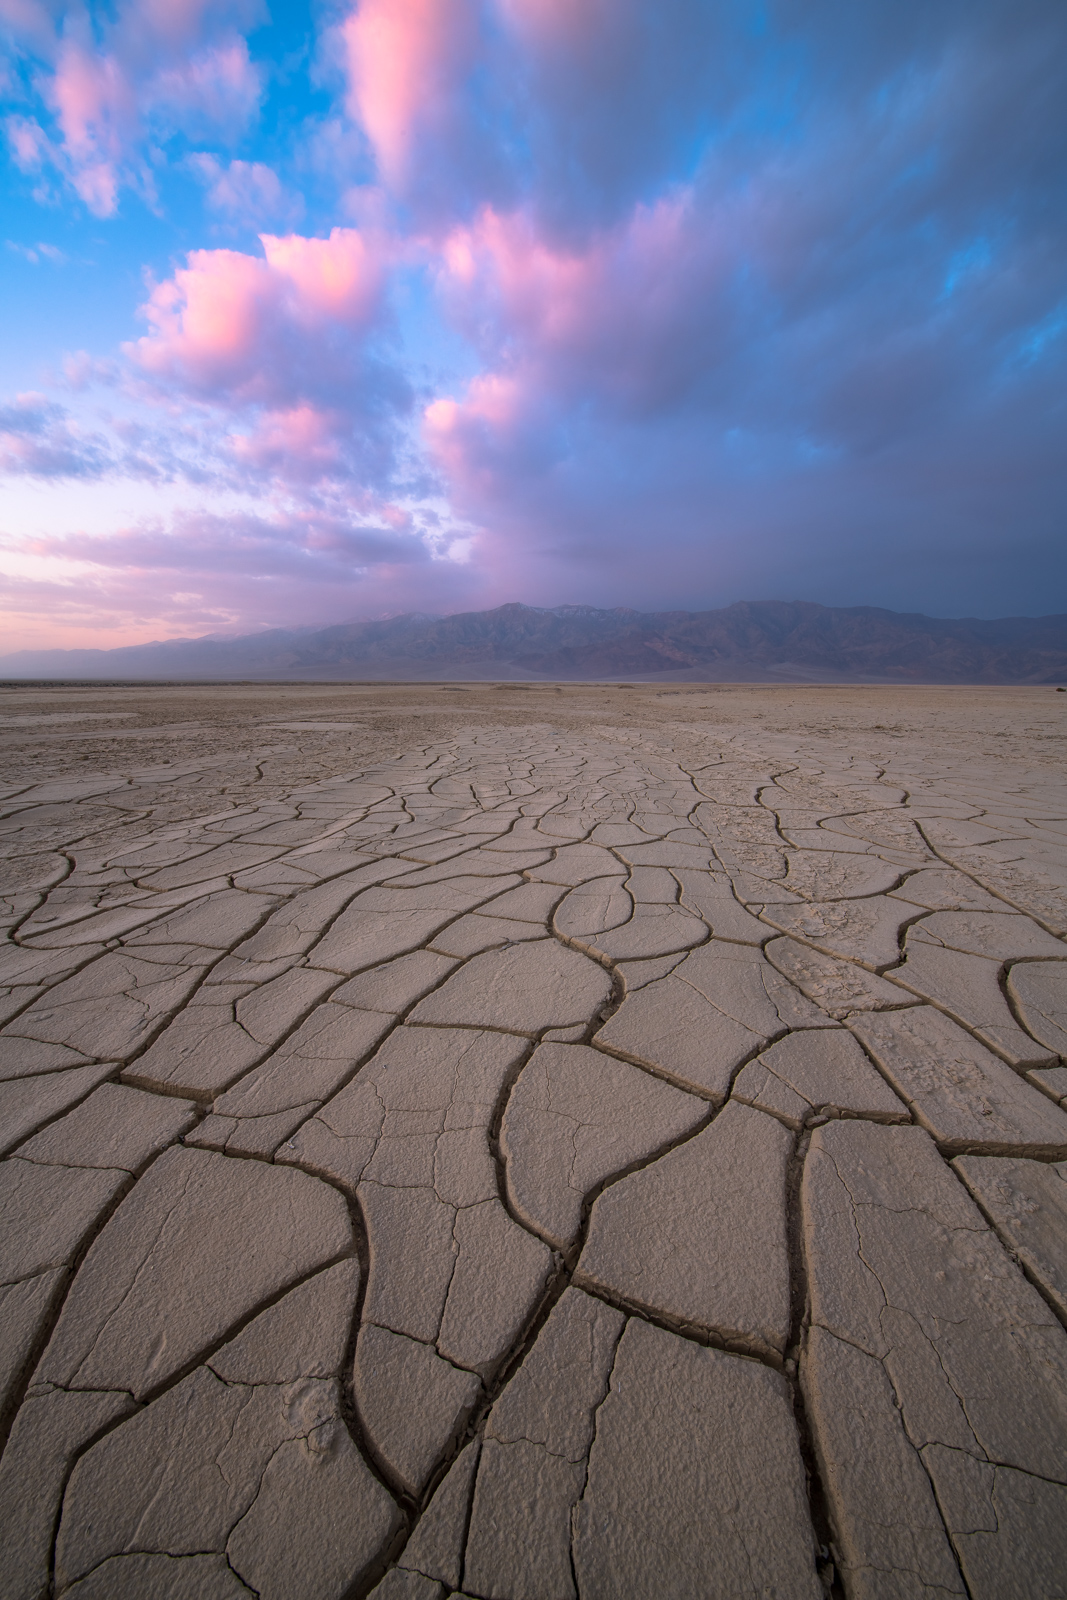 A dust storm over the Panimint Mountains viewed from mud flats in Death Valley National Park.